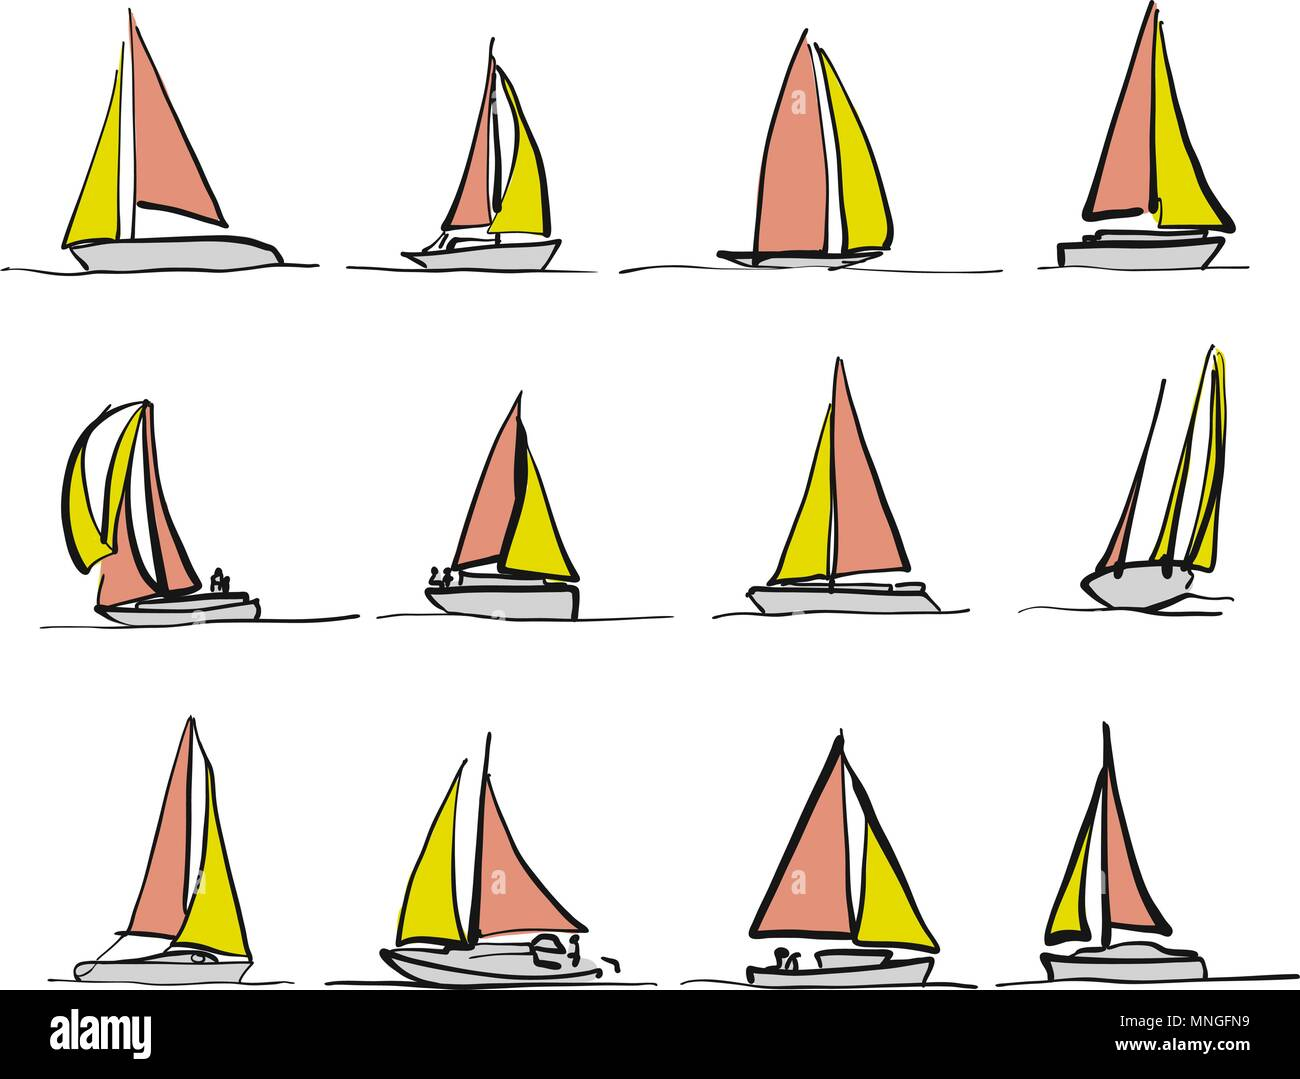 Colored sailboat drawings, bicolor vector sketches - Stock Vector